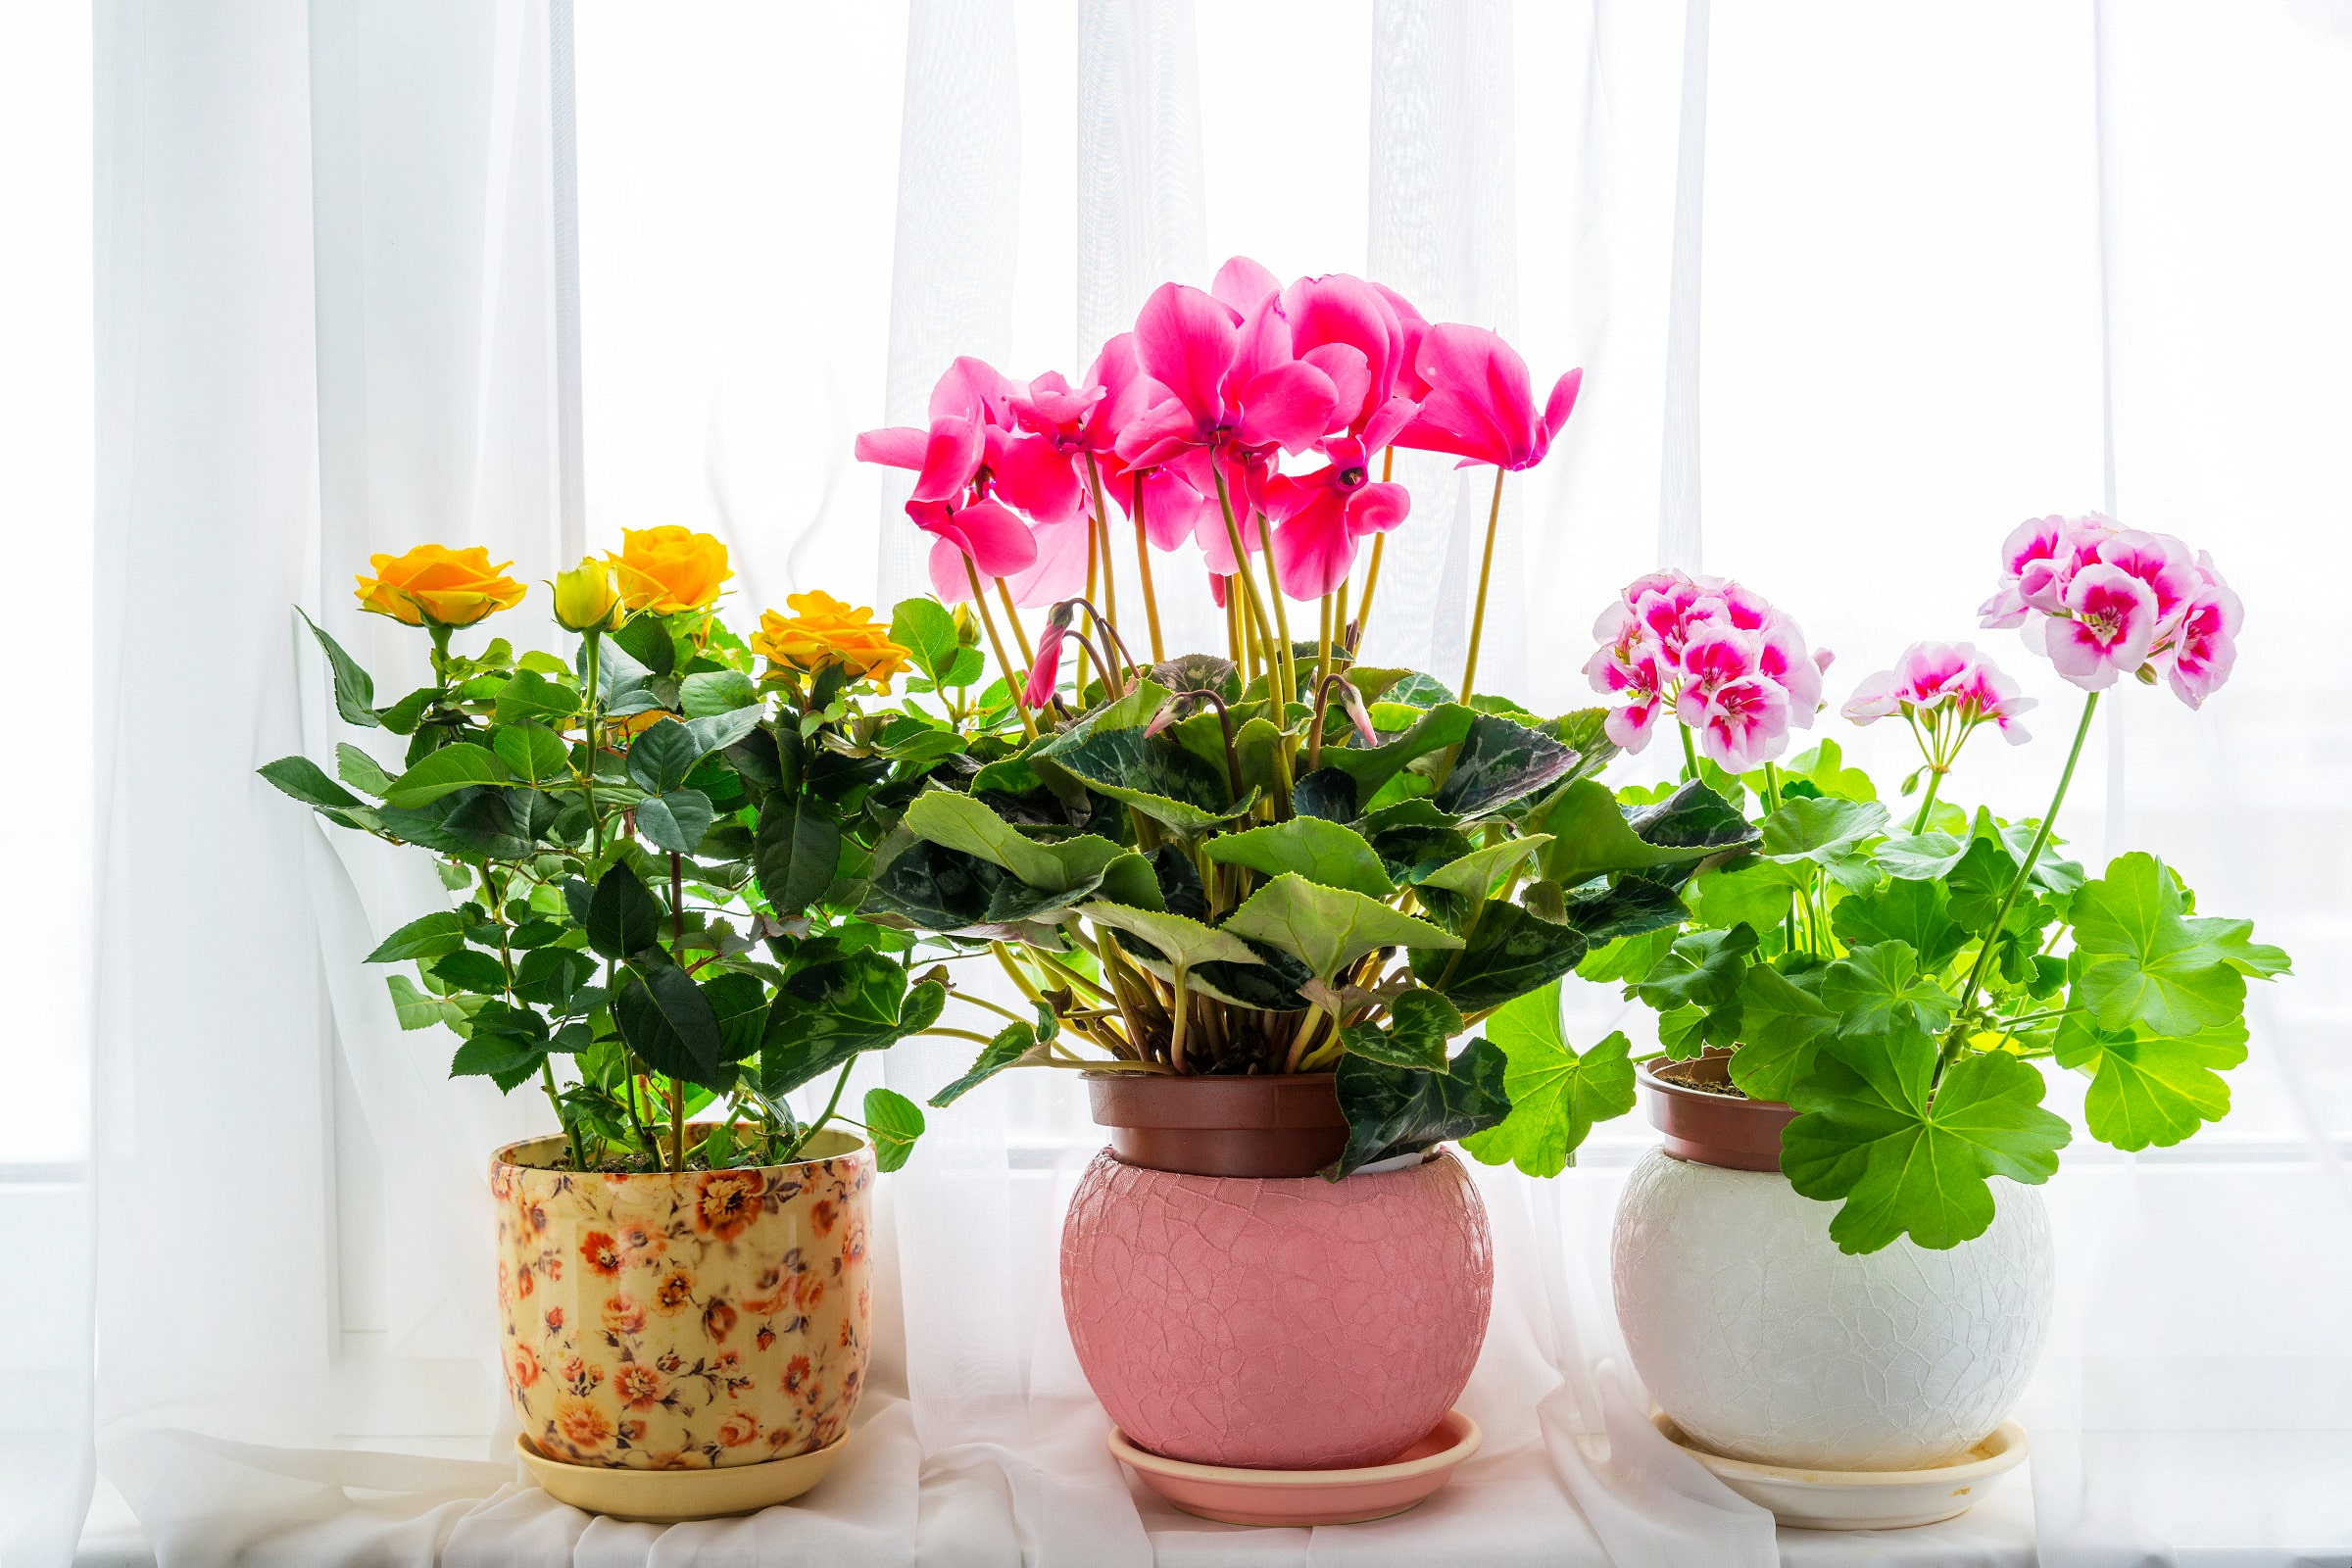 Potted Flowers On A Windowsill